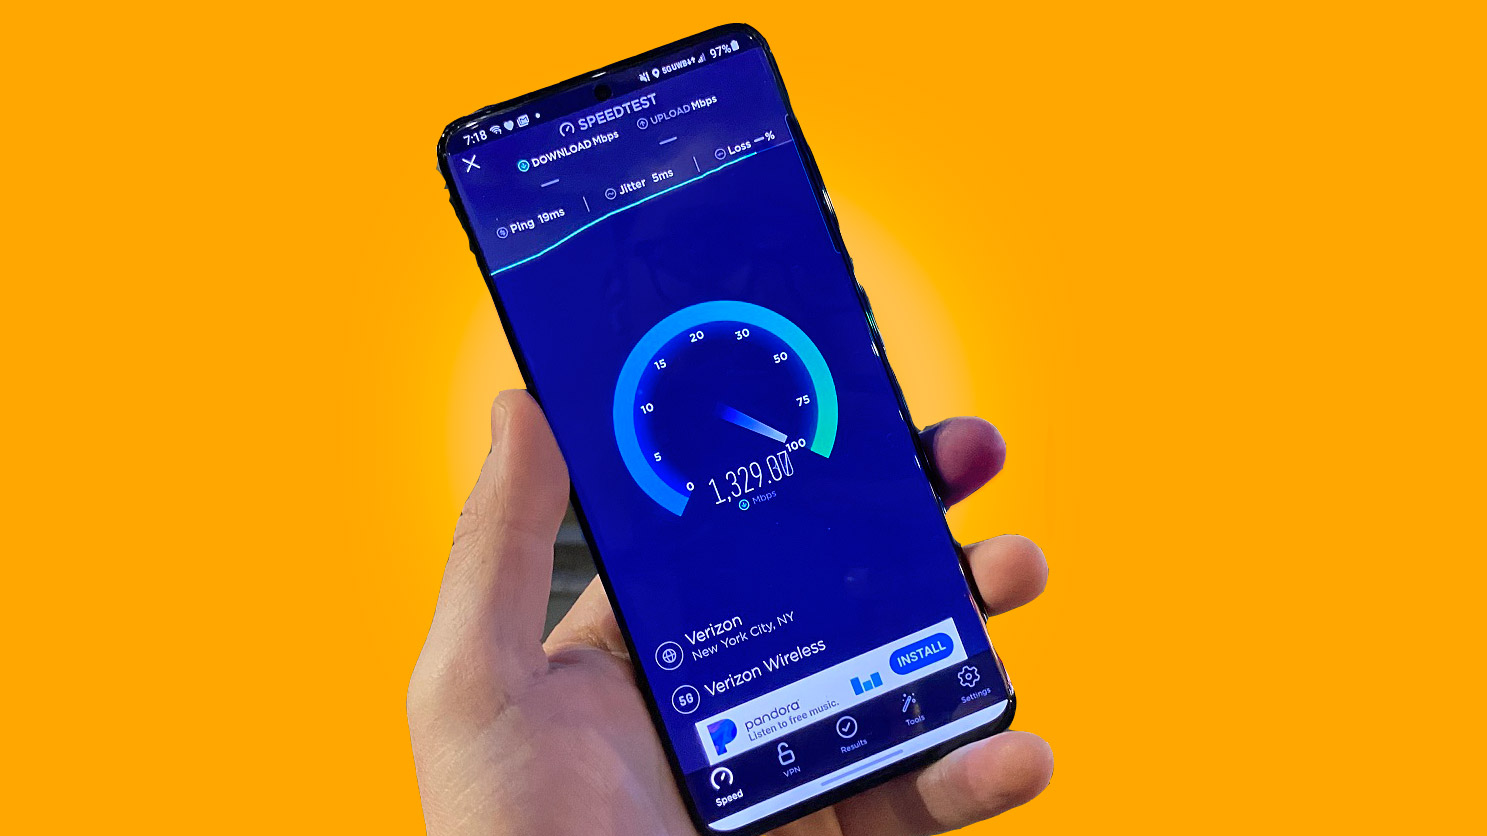 Best Value Smartphone 2021 Best 5G phones 2020: the top handsets with next gen connectivity